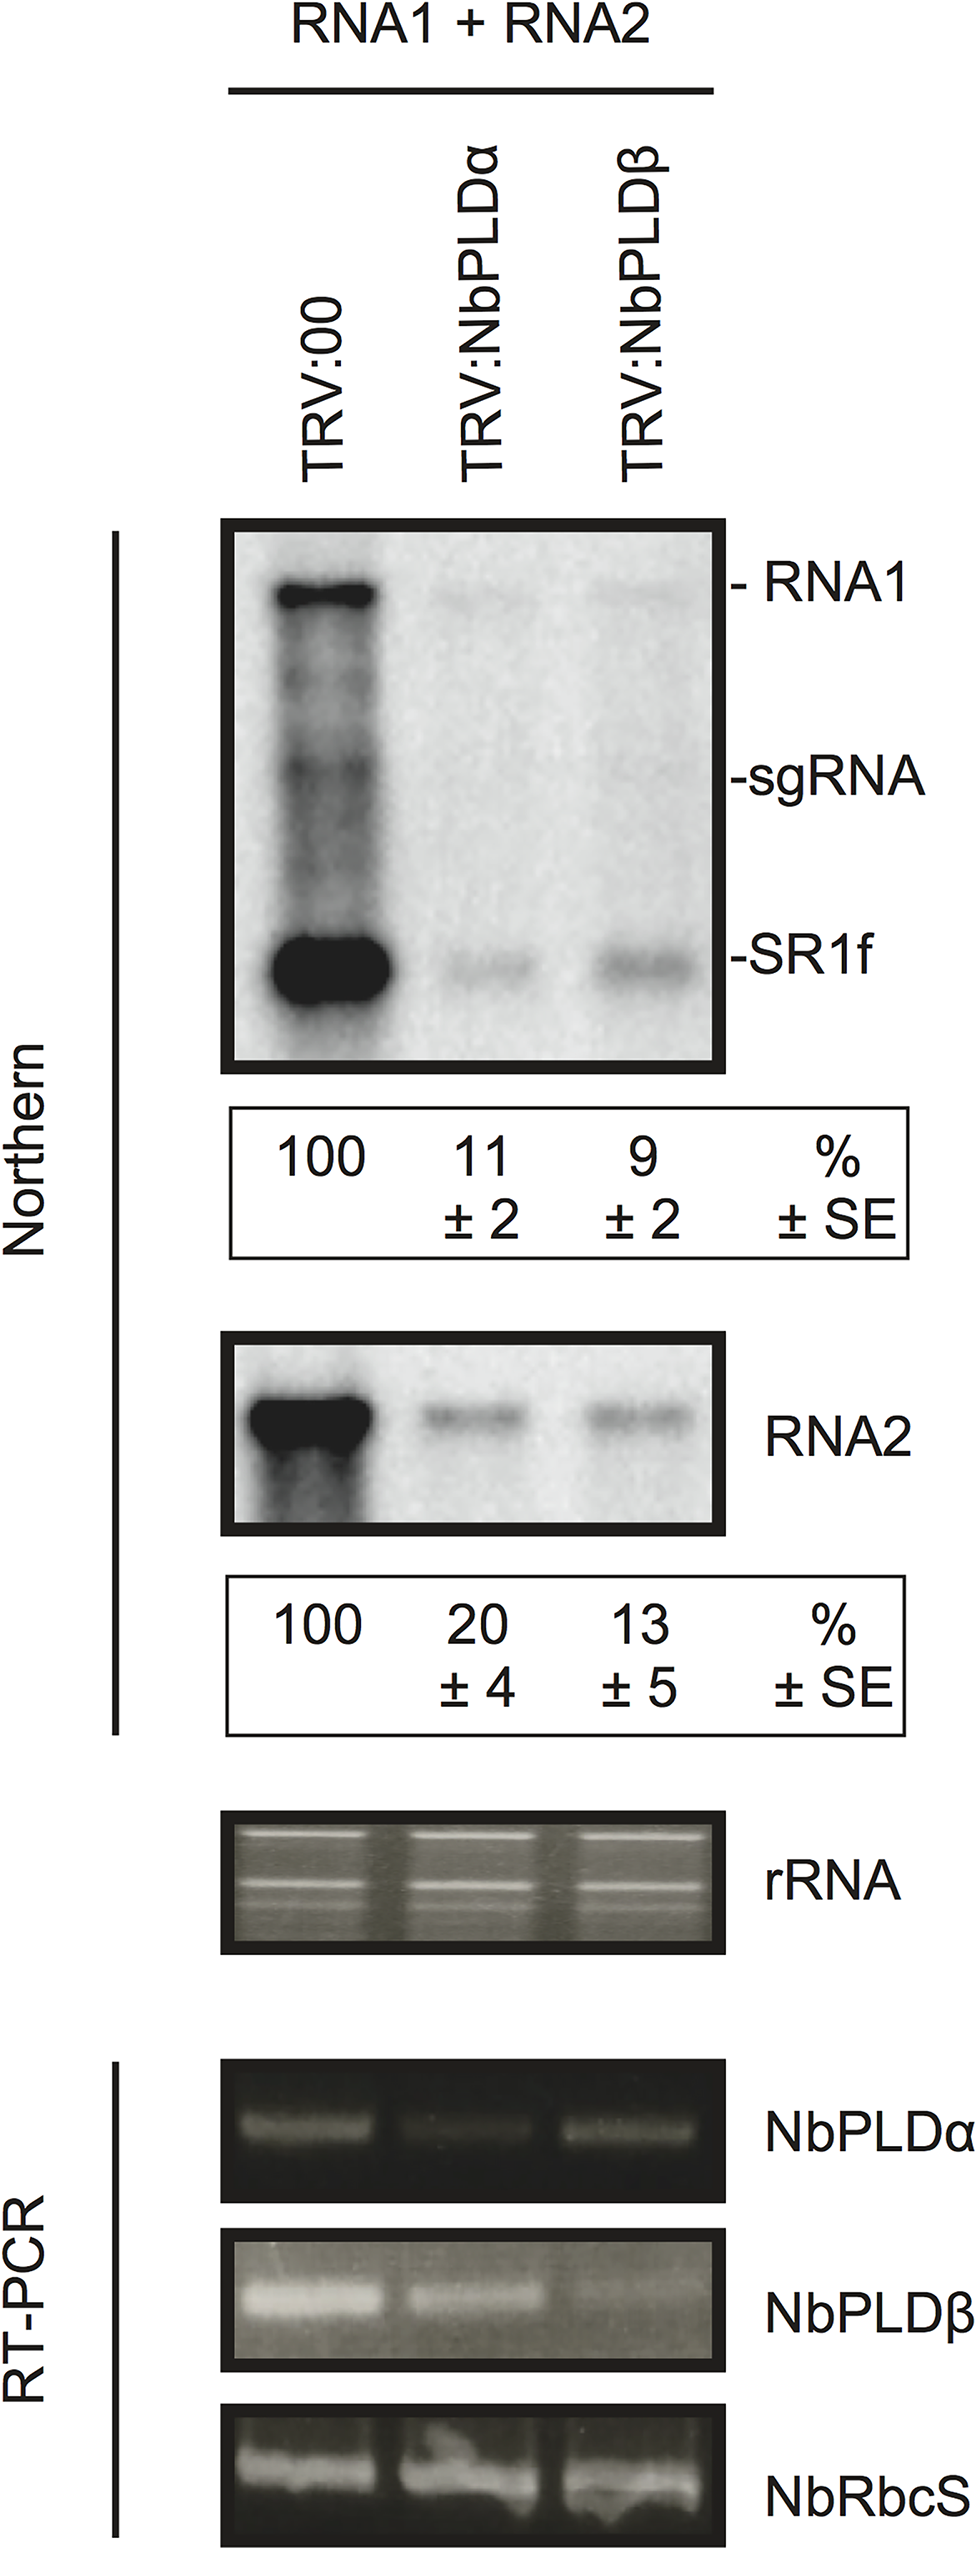 Knockdown of <i>NbPLDα</i> and <i>NbPLDβ</i> mRNAs levels via gene silencing inhibits the accumulation of RCNMV RNAs in <i>N</i>. <i>benthamiana</i>.